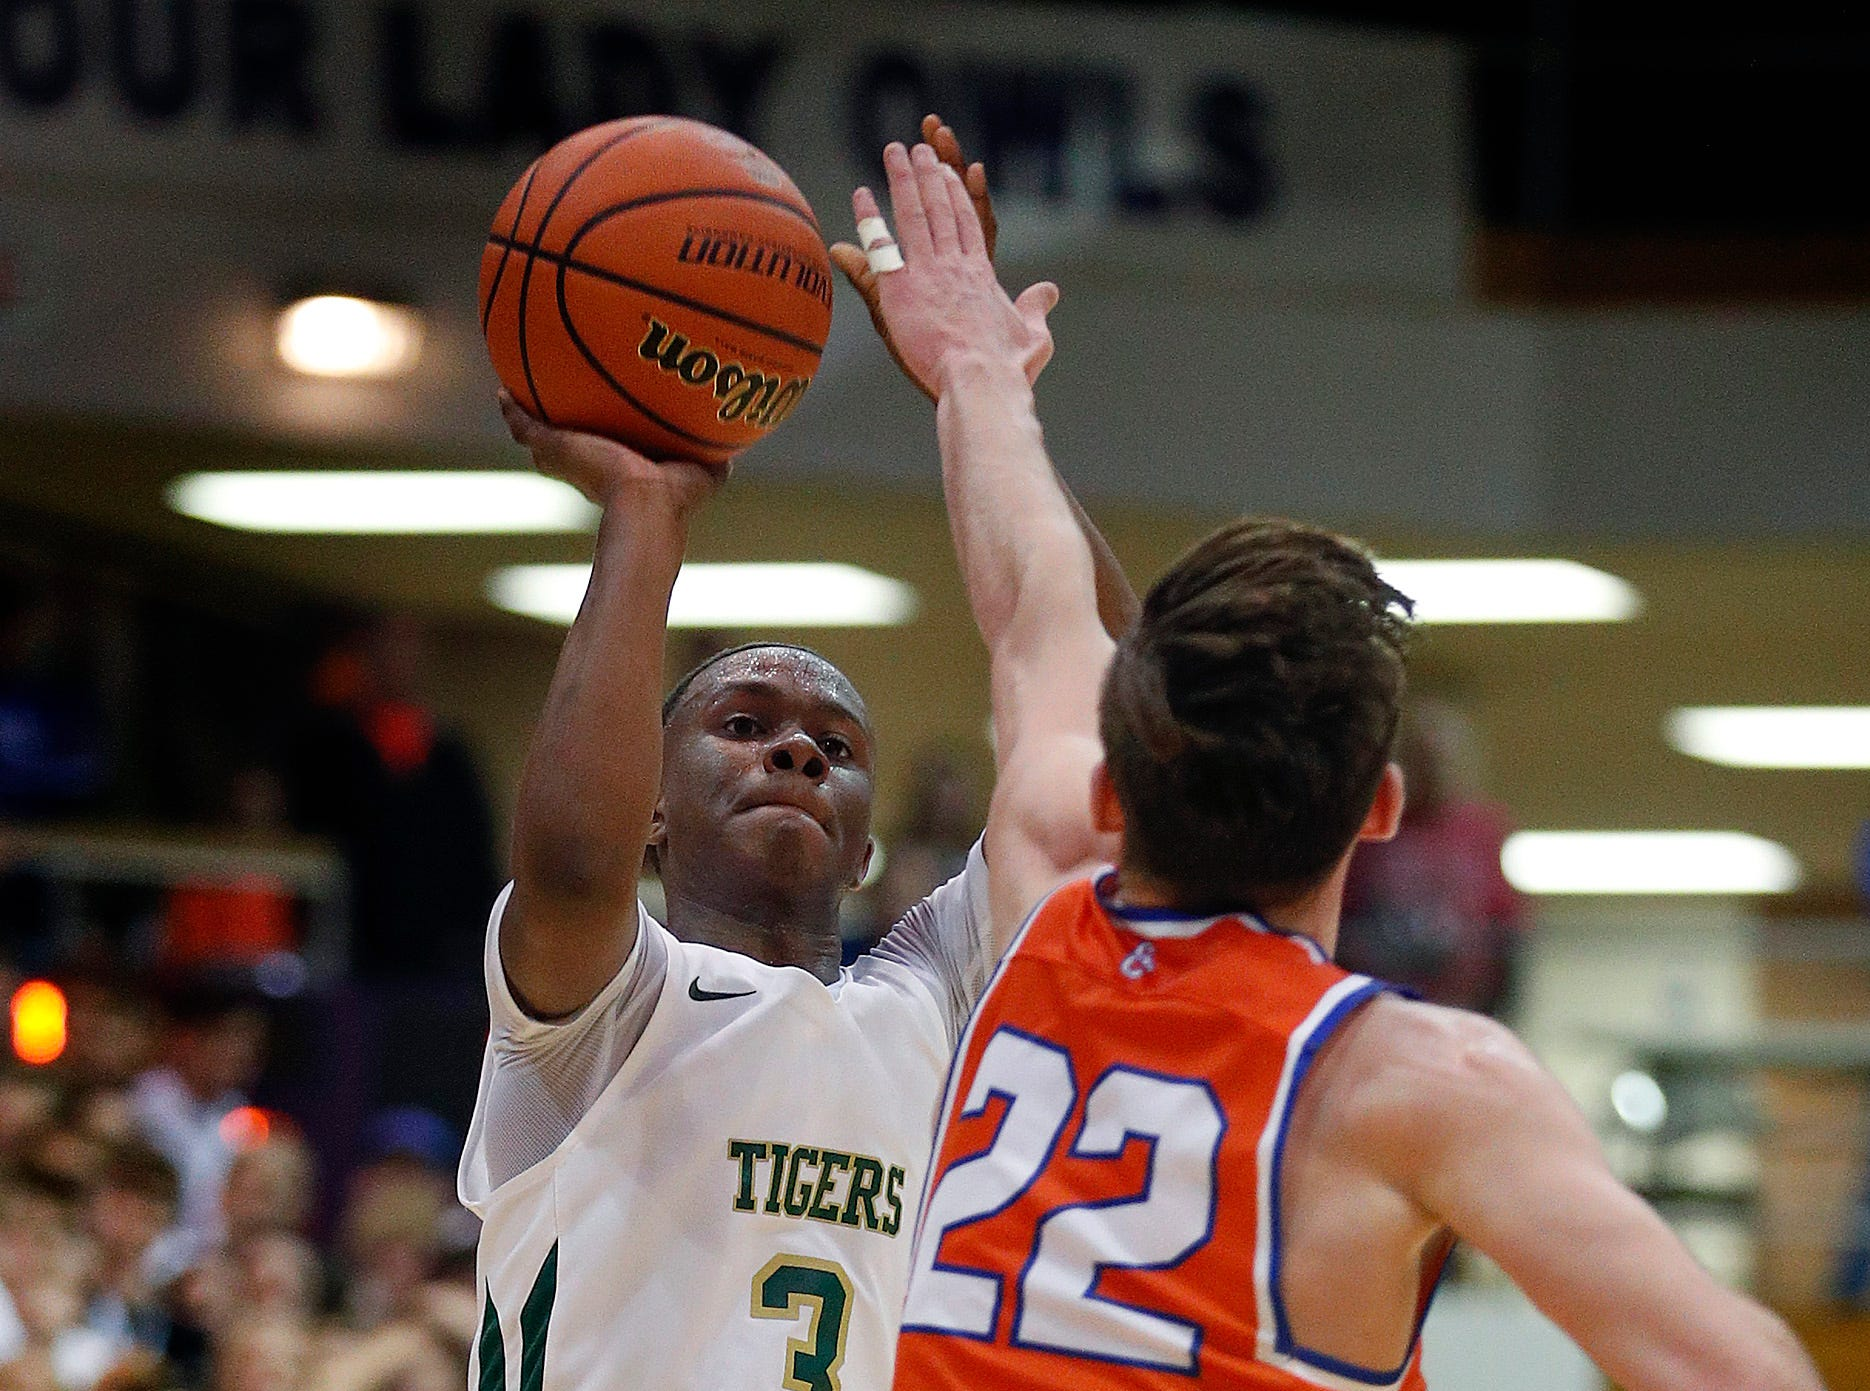 Crispus Attucks Tigers SinCere McMahon (3) puts up a three-point shot over Silver Creek Dragons Ty Kessinger (22) in the second half of their IHSAA boys' Semi-State basketball game at Seymour High School gym in Seymour IN, on Saturday, Mar. 16, 2019. The Silver Creek Dragons defeated the Crispus Attucks Tigers 72-69.